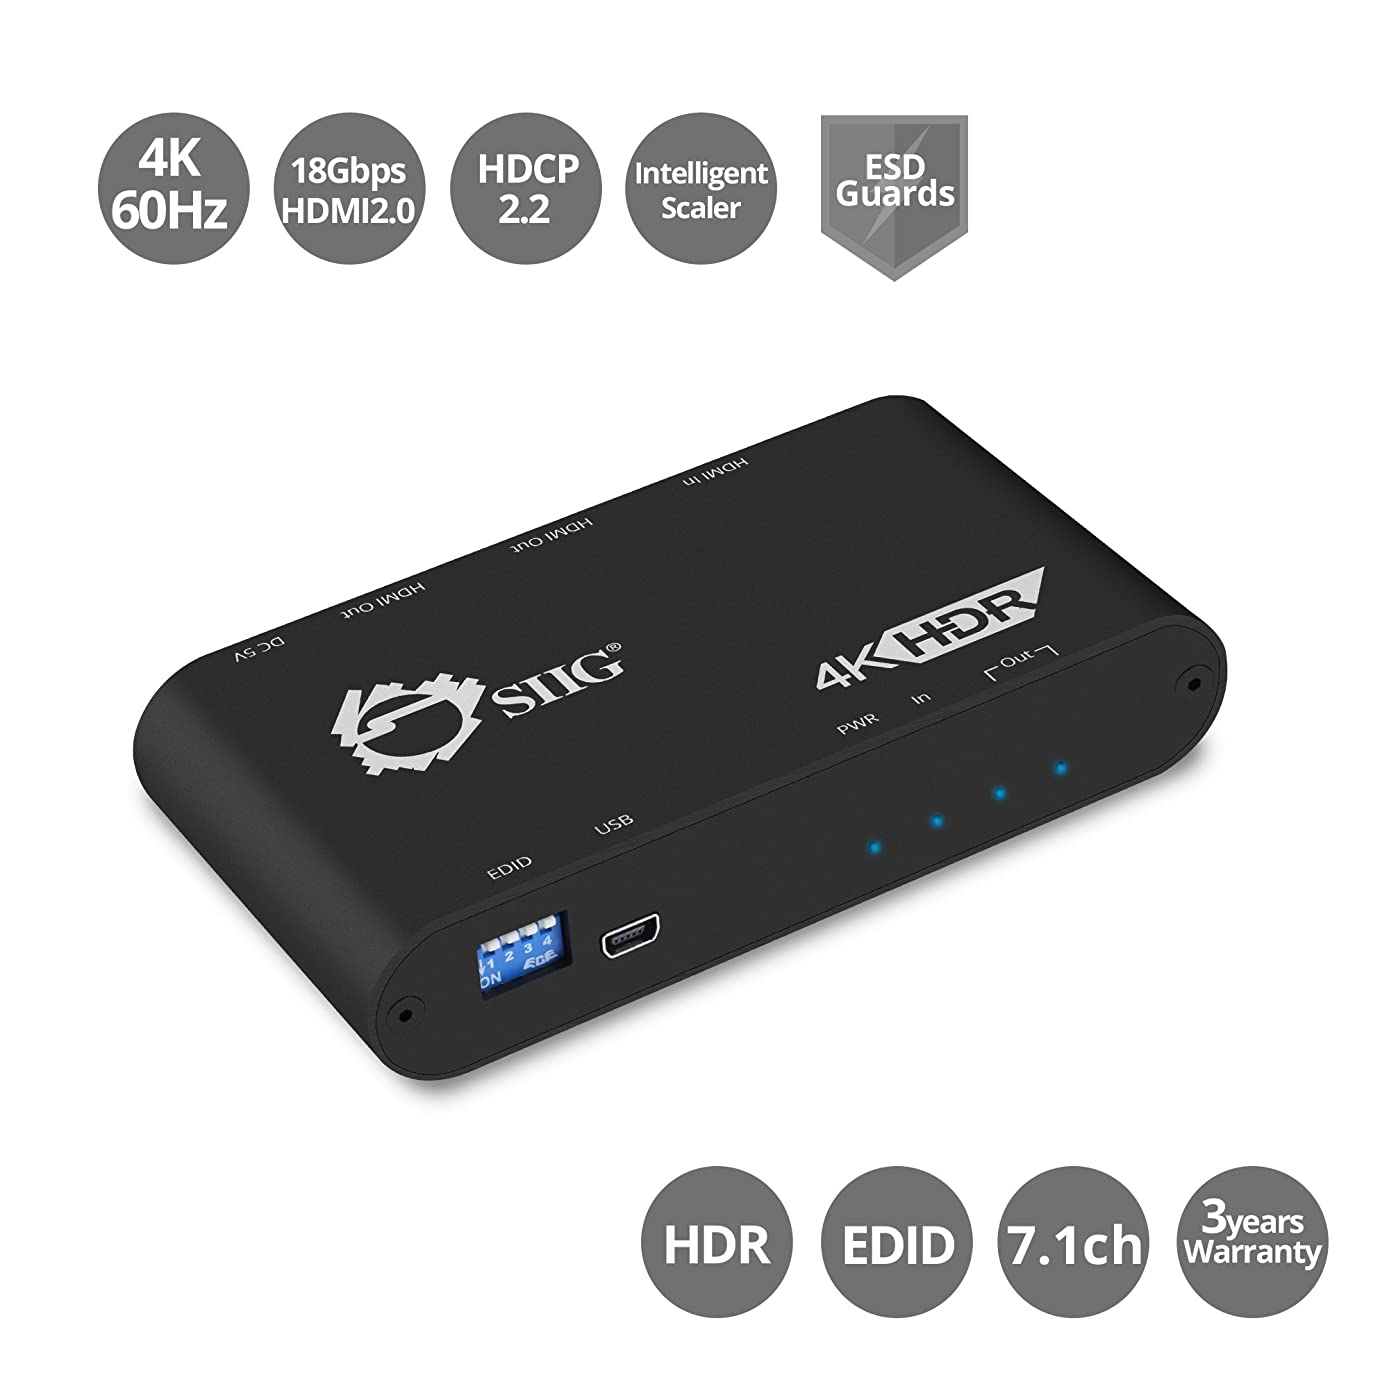 SIIG 4K 1x2 HDMI Splitter with EDID Management | 4:4:4, 4K @60Hz, HDCP 2.2, 18Gbps | Auto Scaling, Low Heat | 1 in 2 Out